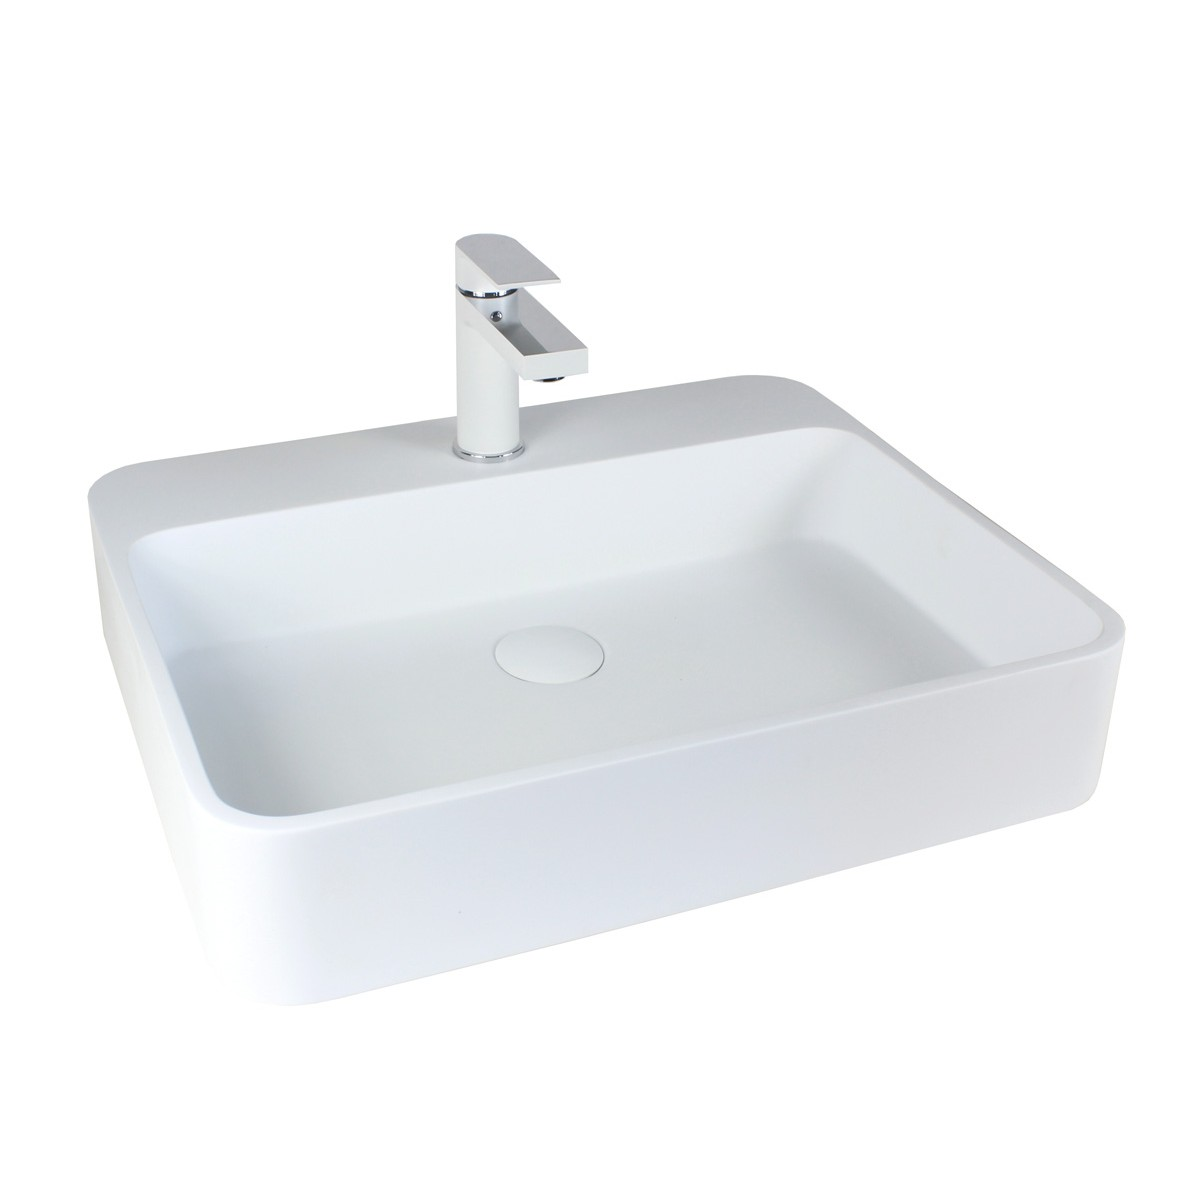 Single Hole Vessel Sink Faucet : Anna Matte White Chrome Handle Bathroom Vessel Sink Single Hole Faucet